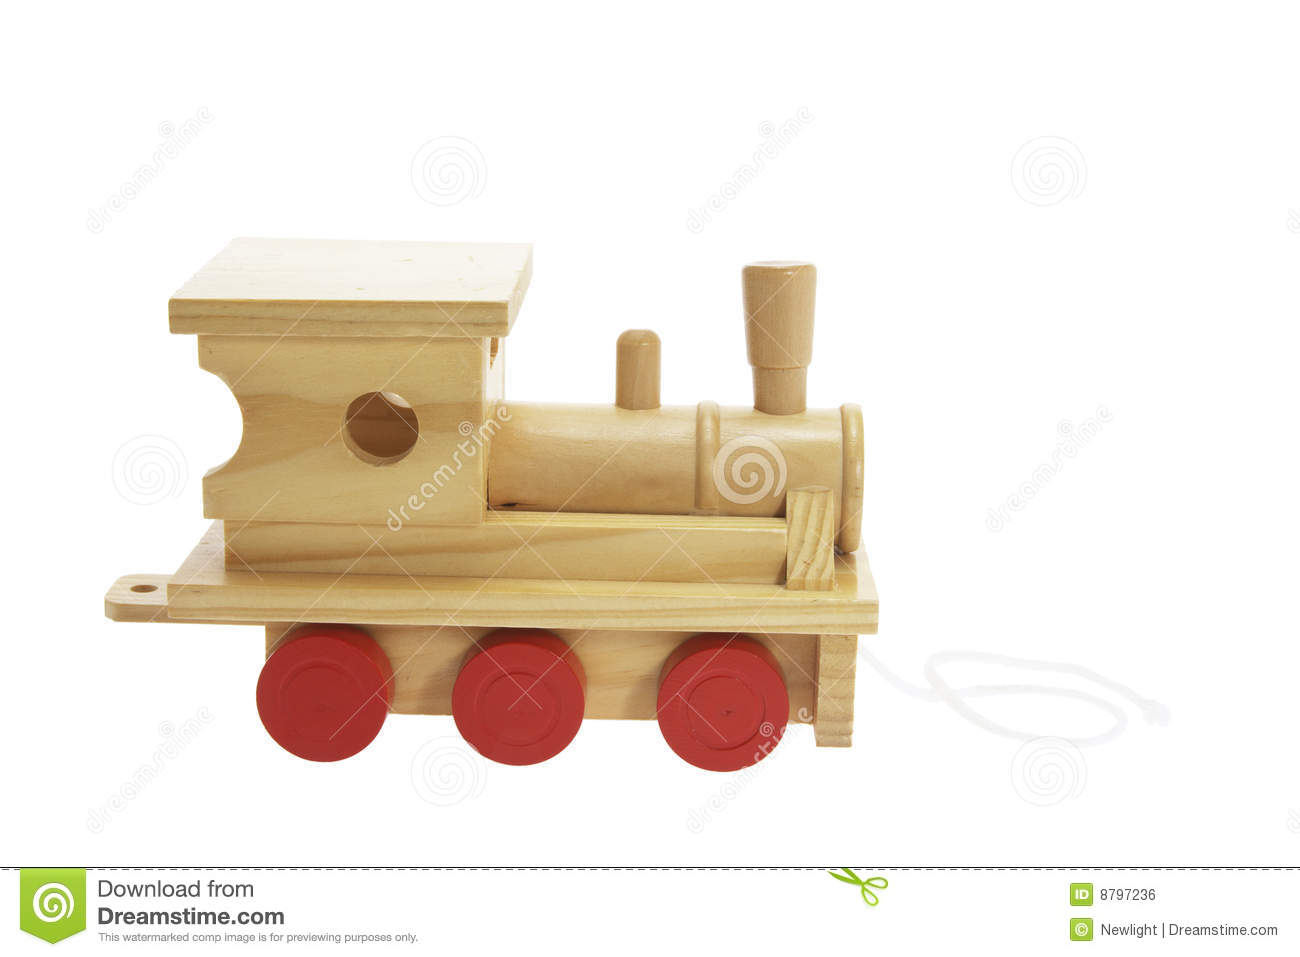 wooden toy train stock photo. image of studio, wooden - 8797236